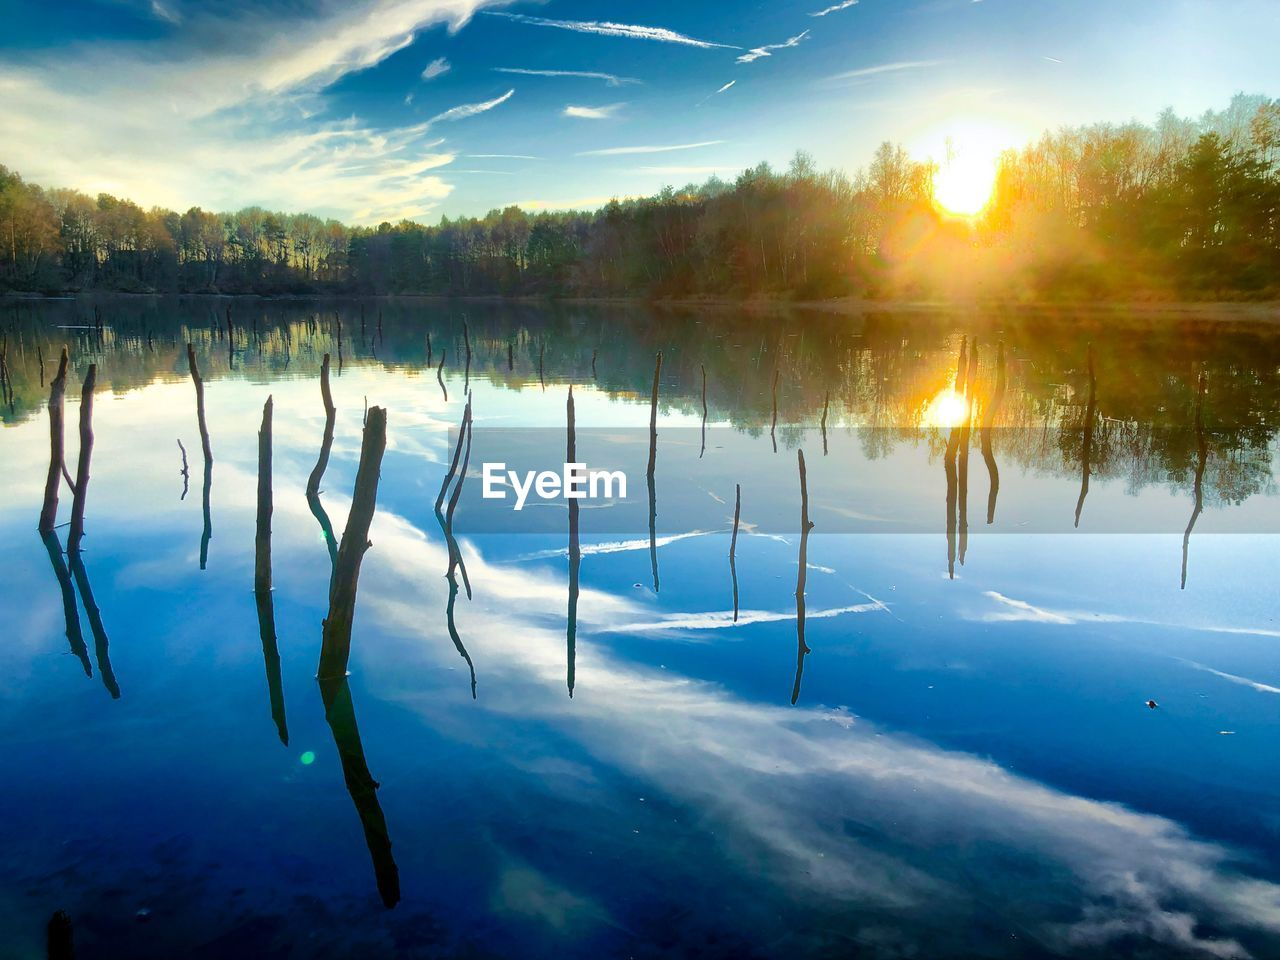 tranquility, water, reflection, beauty in nature, scenics - nature, sky, tranquil scene, lake, cloud - sky, tree, nature, plant, no people, idyllic, non-urban scene, sunset, day, outdoors, sunlight, reflection lake